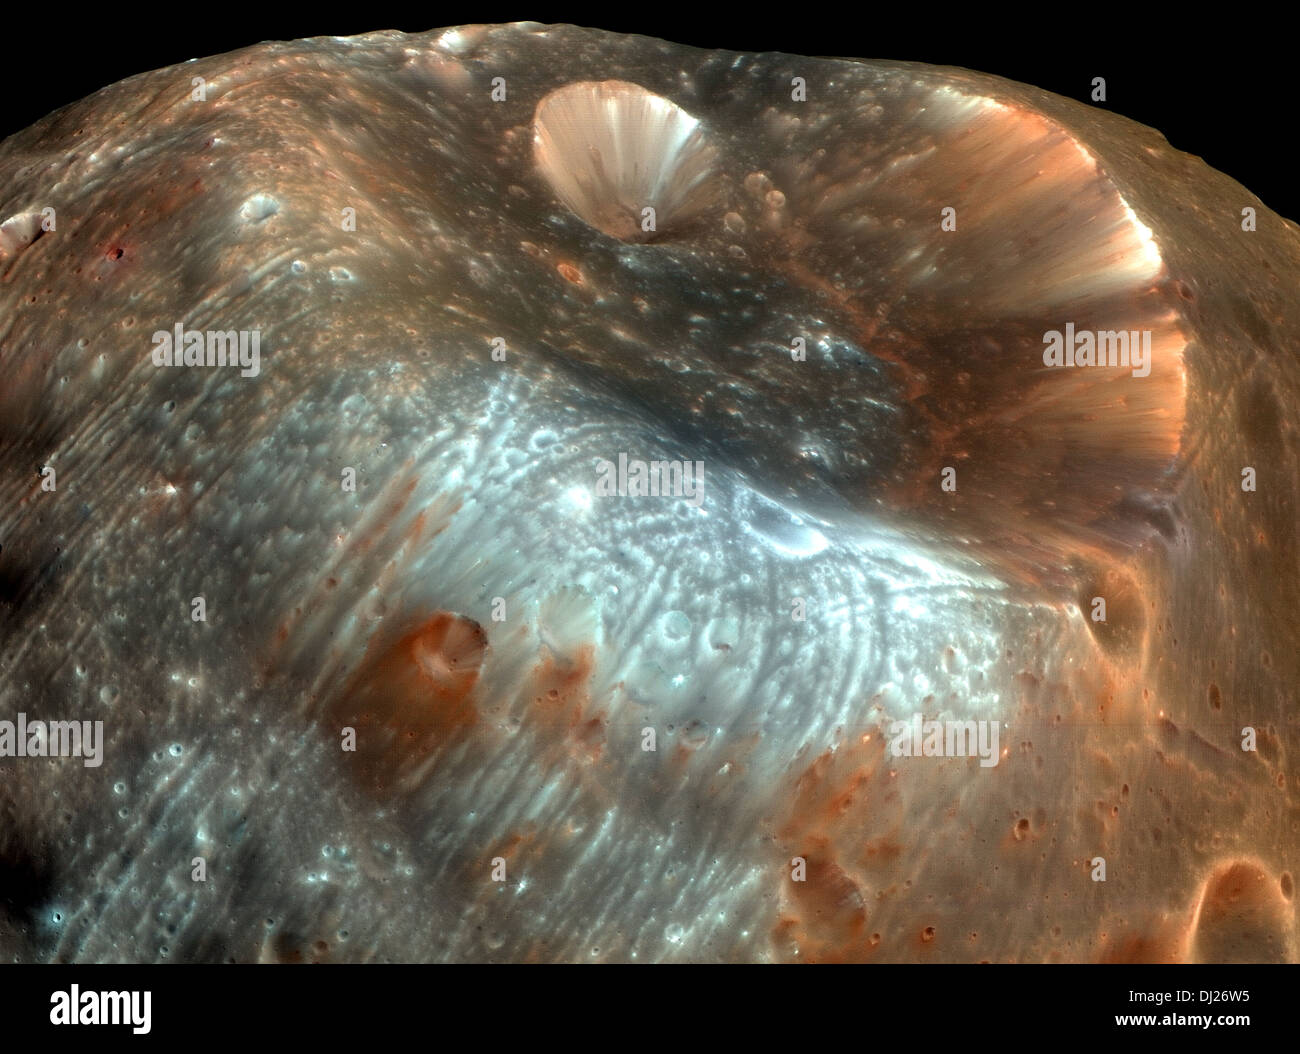 Stickney Crater, the largest crater on the martian moon Phobos. - Stock Image